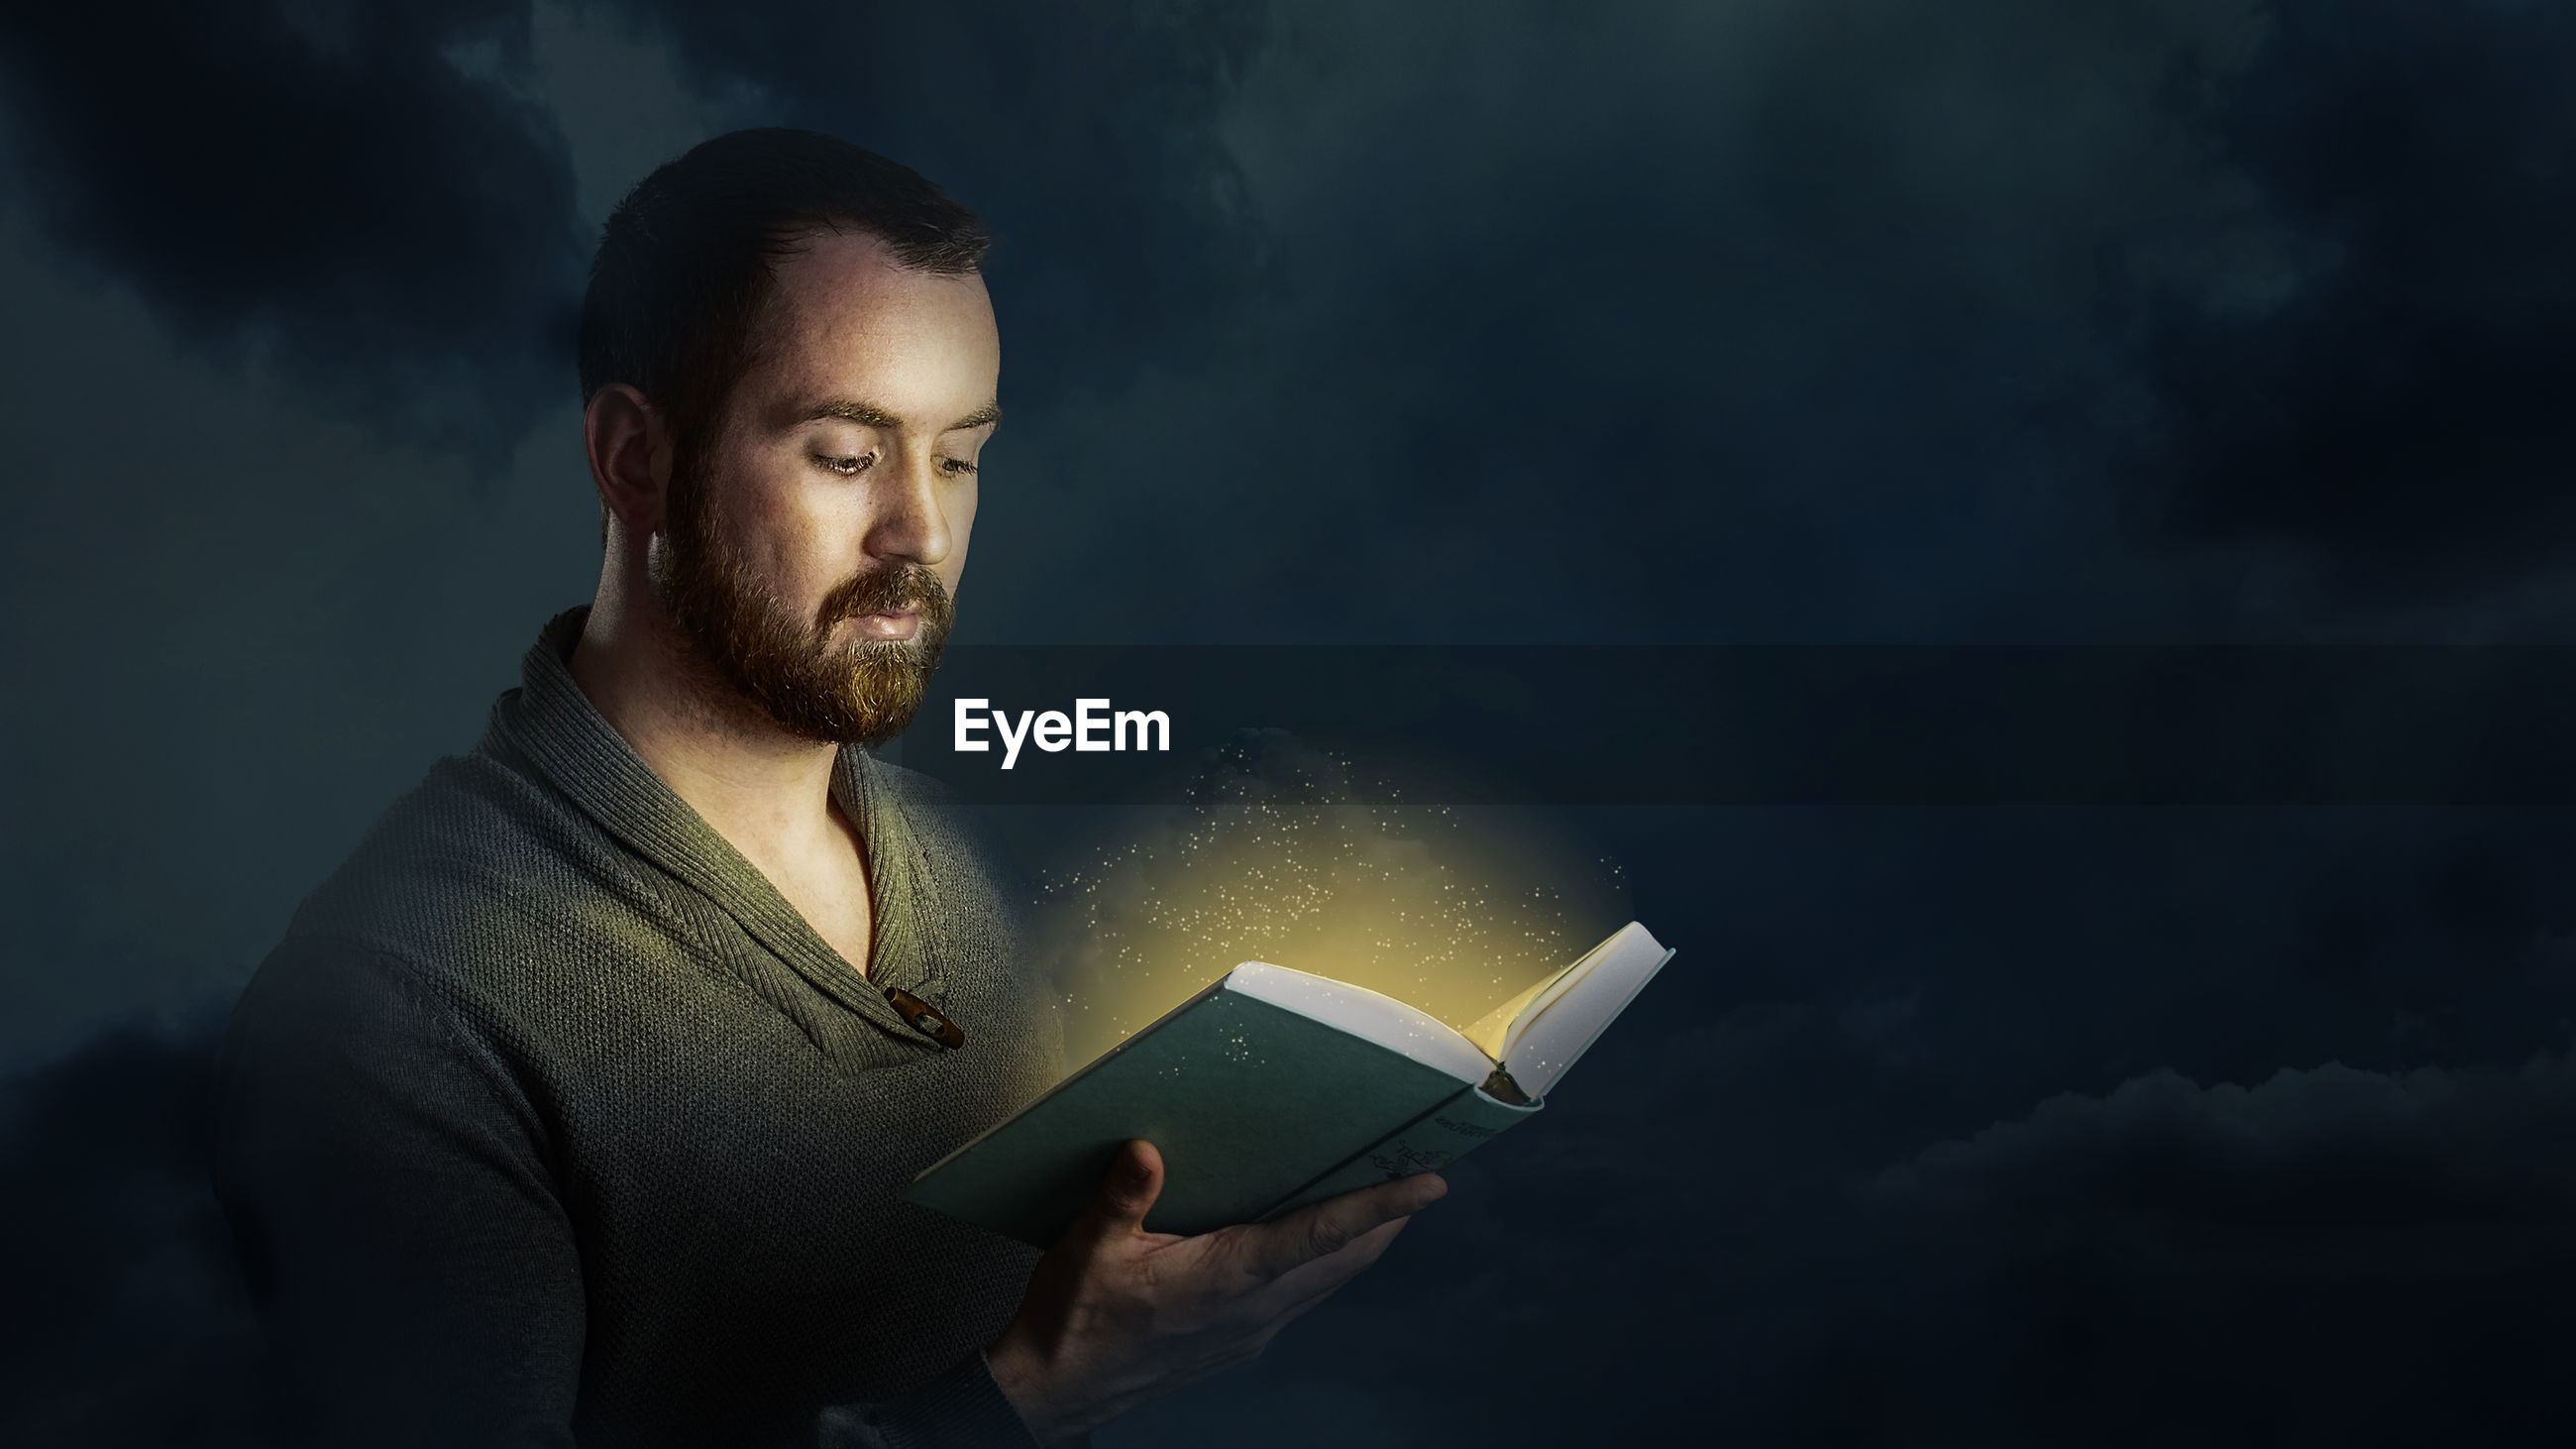 Digital Composite Image Of Man Reading Book Against Cloudy Sky At Night